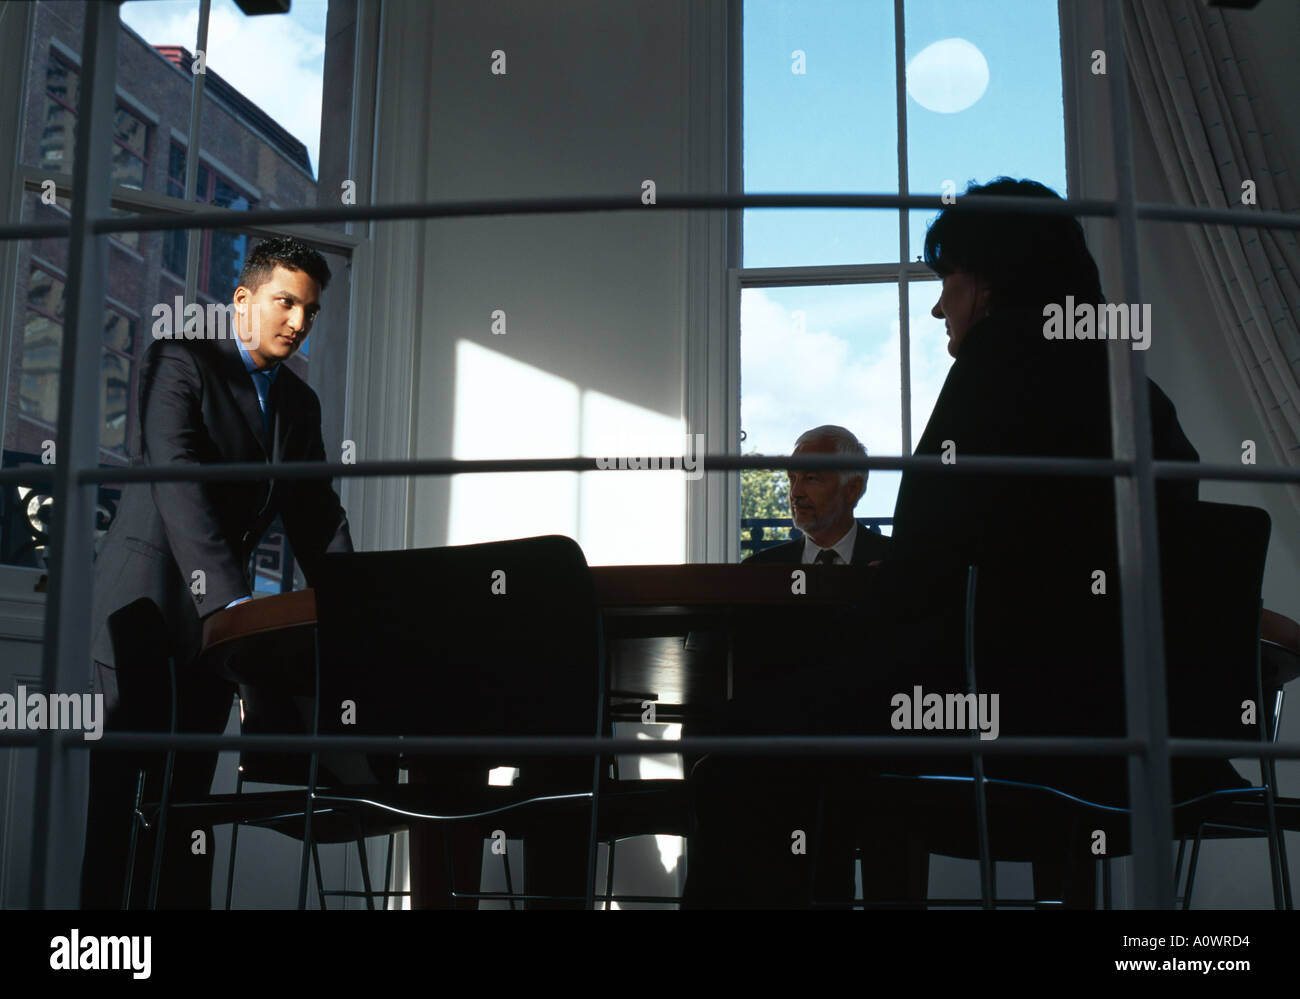 Office life and interiors. Business meeting with spotlit businessman. - Stock Image